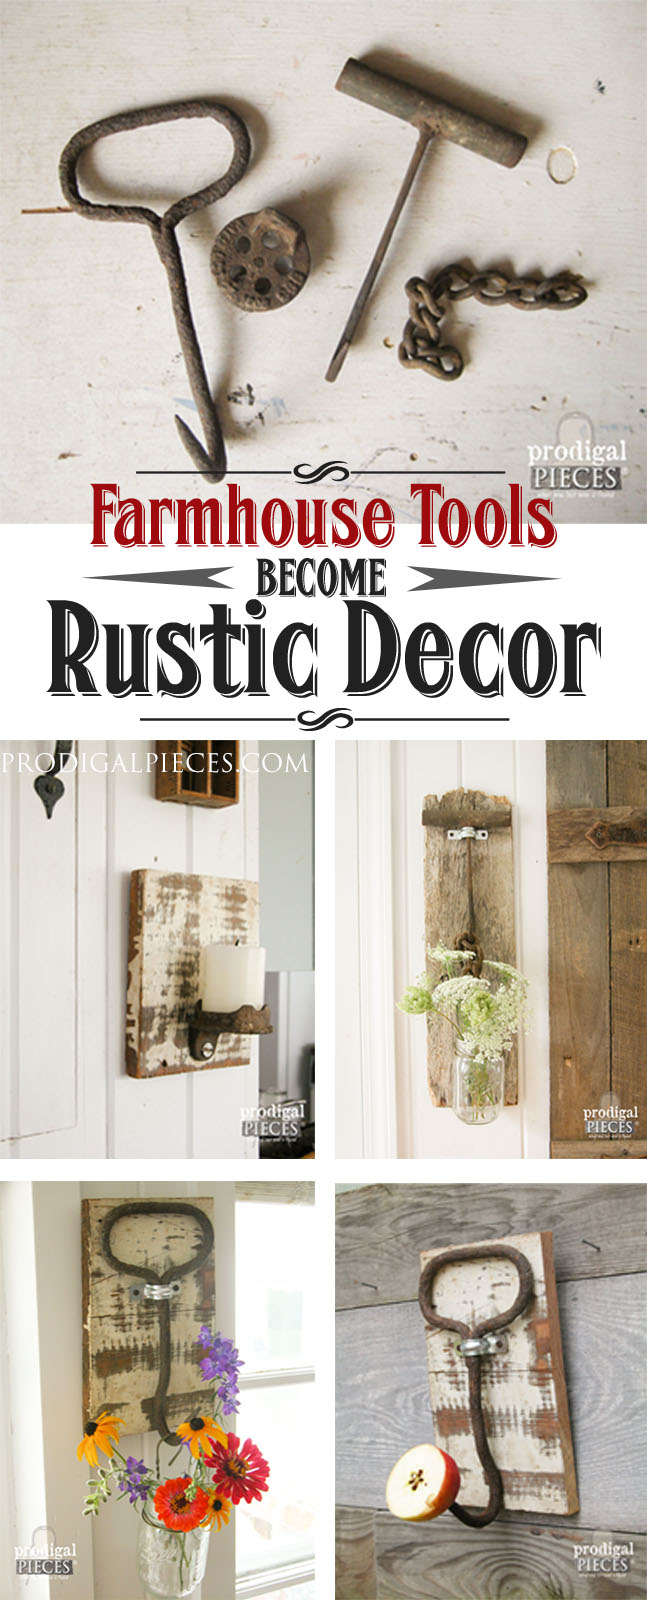 Old Farmhouse Tools Repurposed as Rustic Decor by Prodigal Pieces | prodigalpieces.com